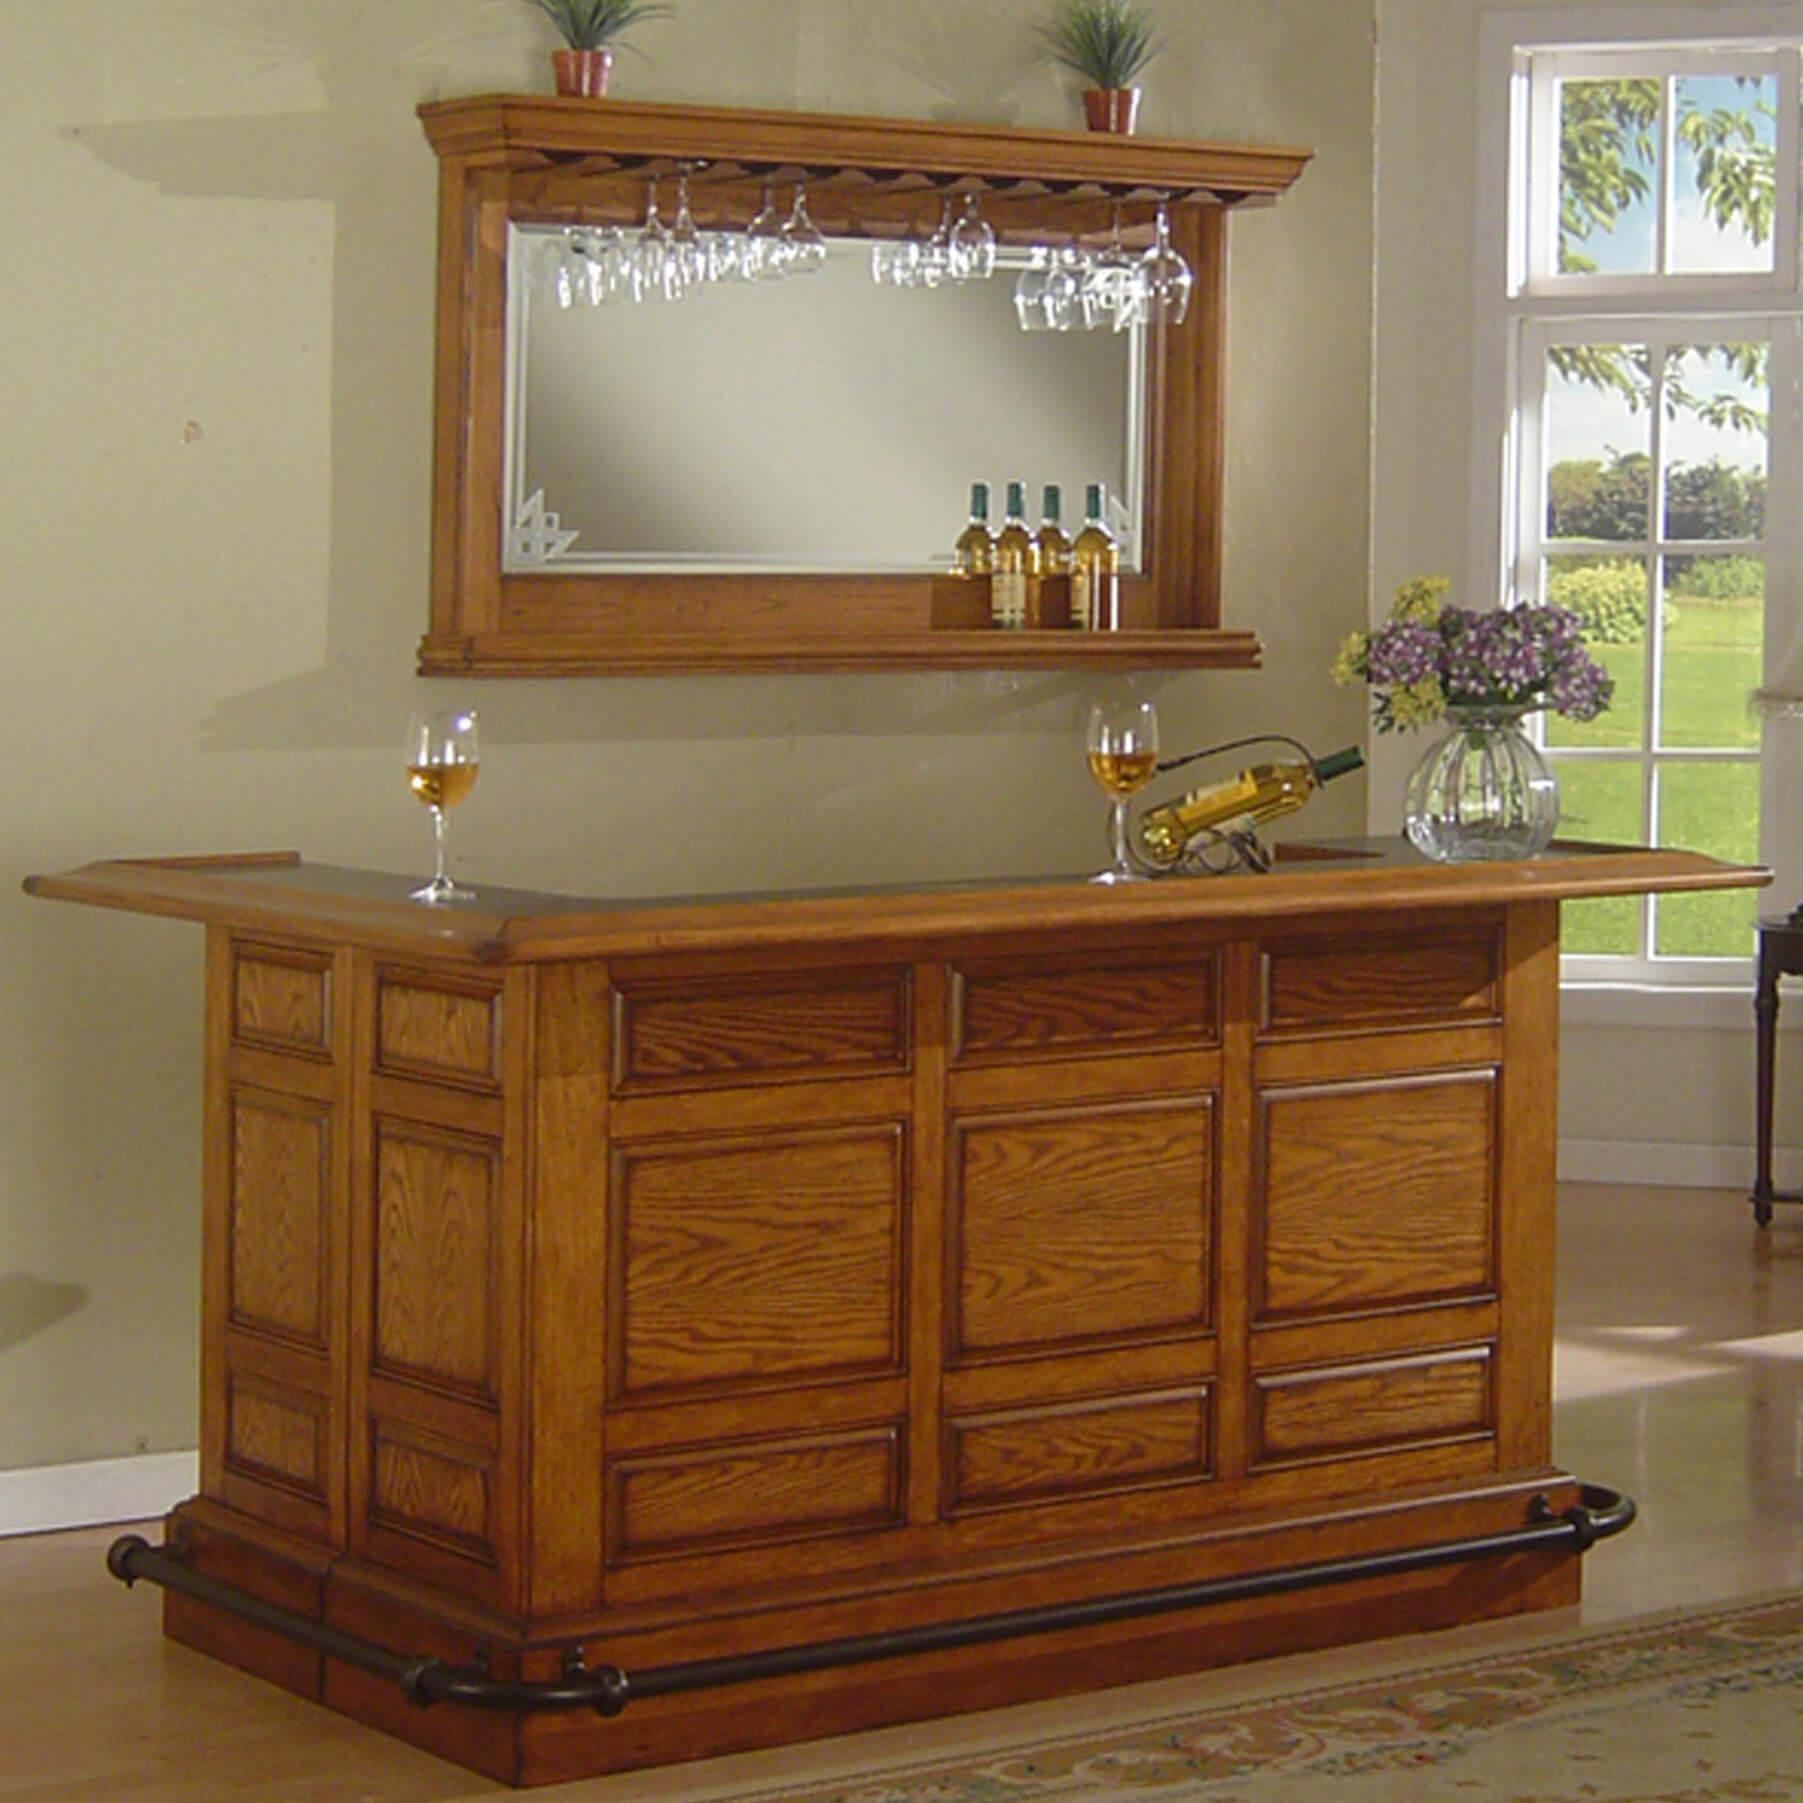 Perfect Solid Wood Home Bar With Wrap Around Counter.